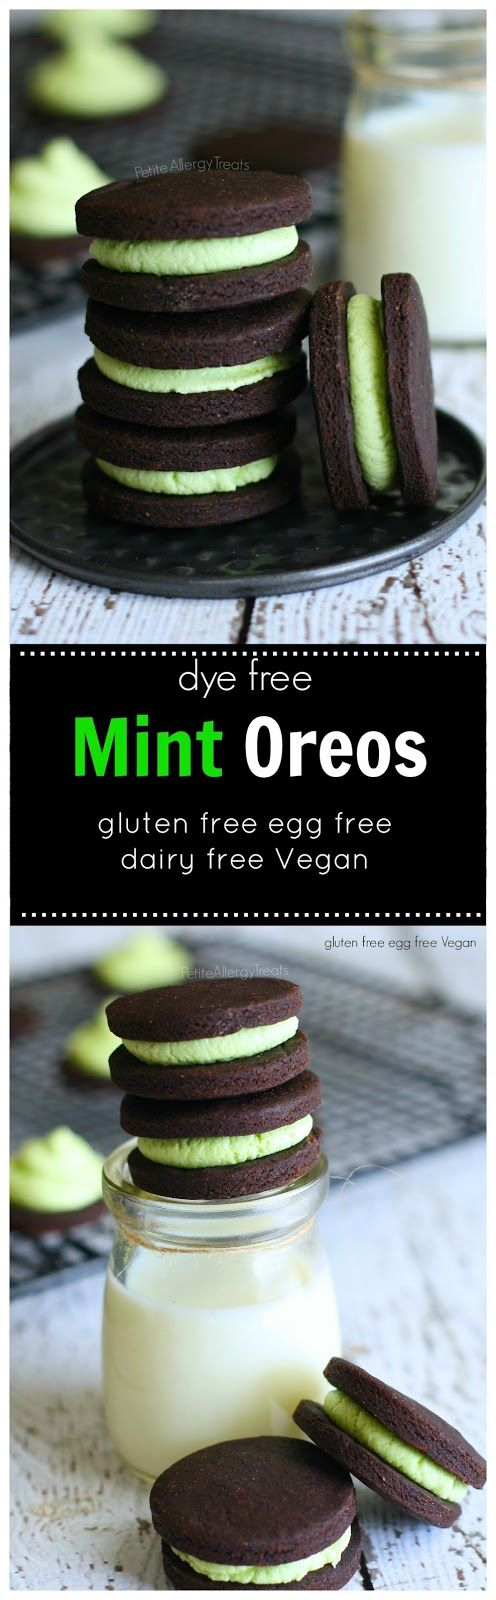 Mint Oreos (gluten free Vegan egg free)- Chocolate mint cookies colored with just a touch of spinach. gluten free, dairy free, Vegan. #glutenfree #recipes #gluten #healthy #recipe